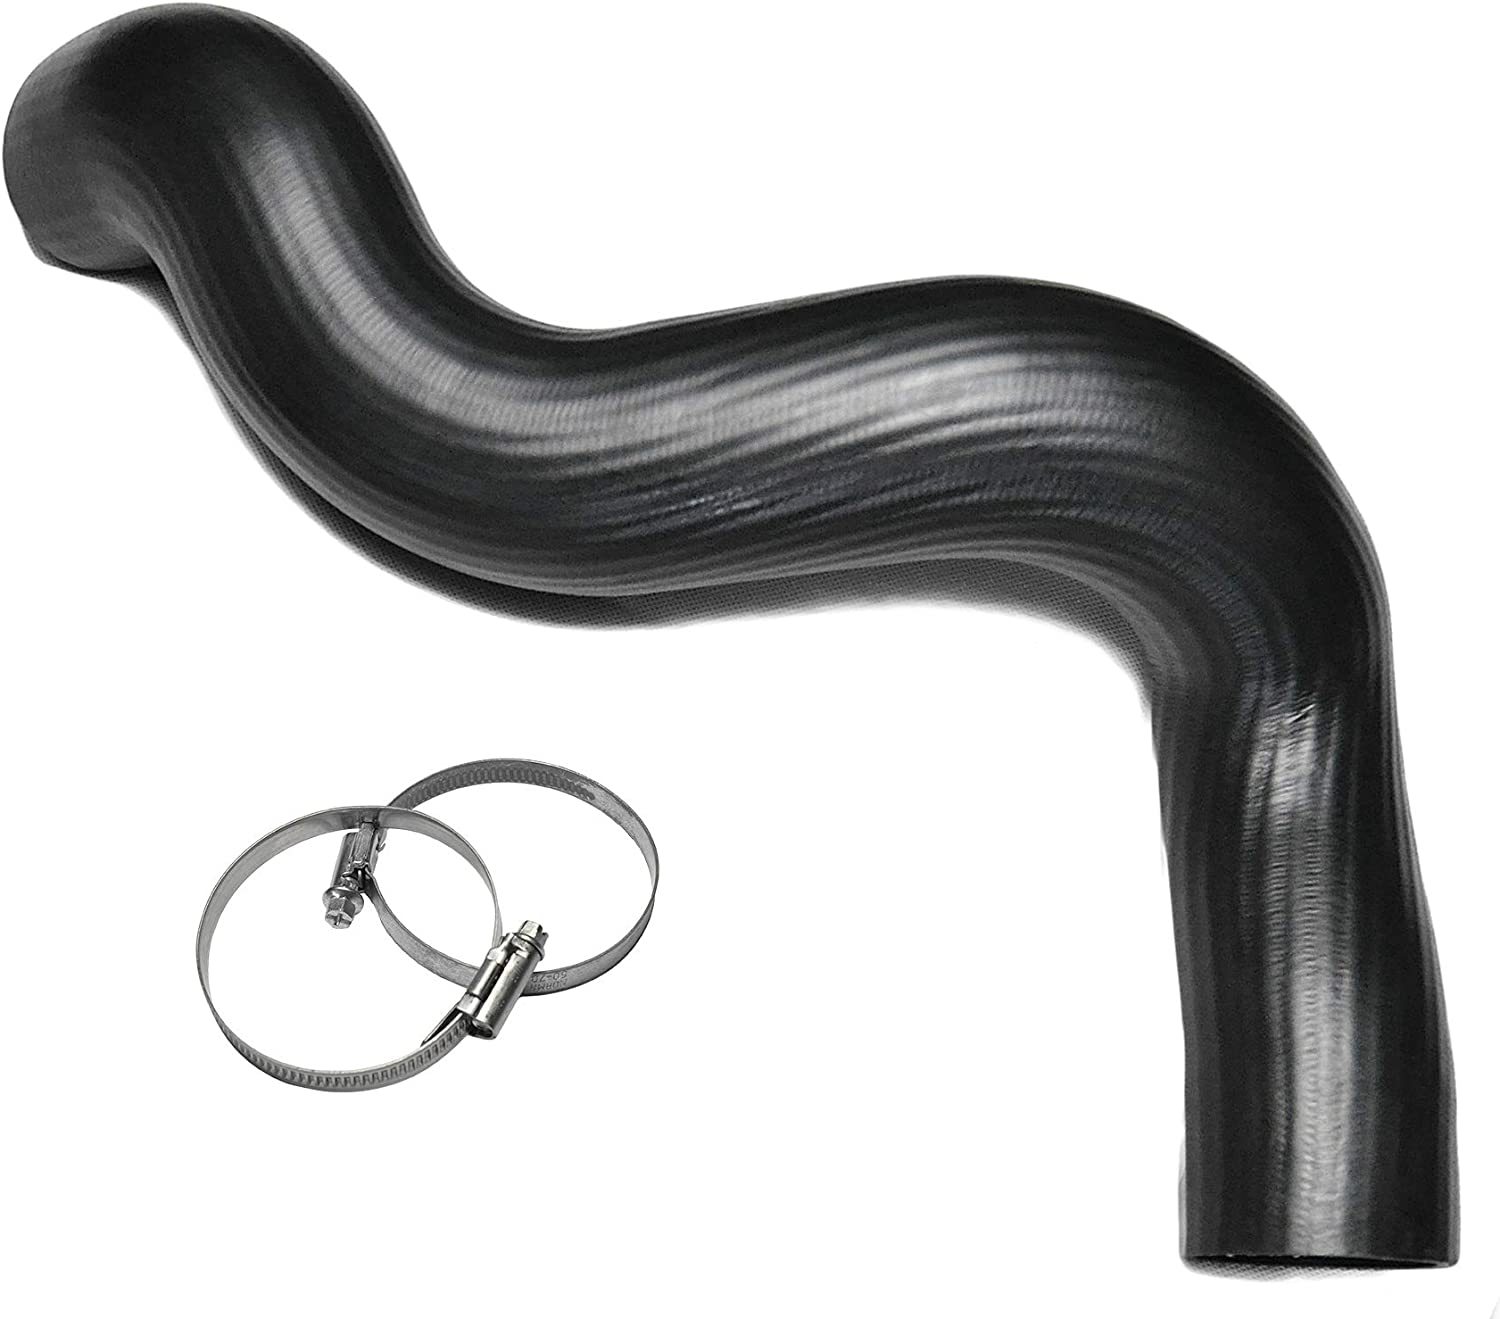 BRAND NEW INTERCOOLER PIPE TURBO HOSE 30741795